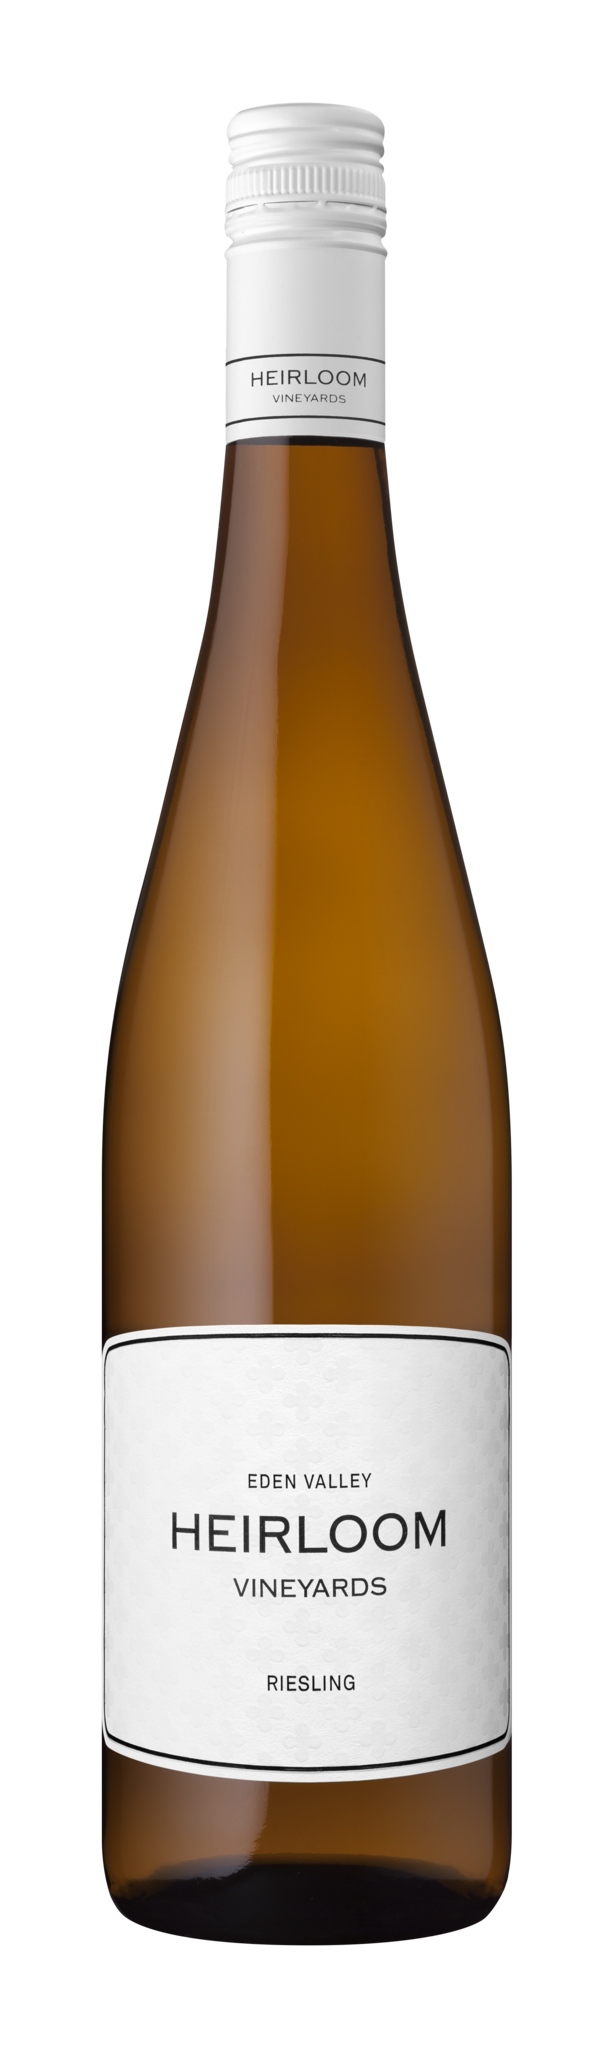 Eden Valley Riesling 2016